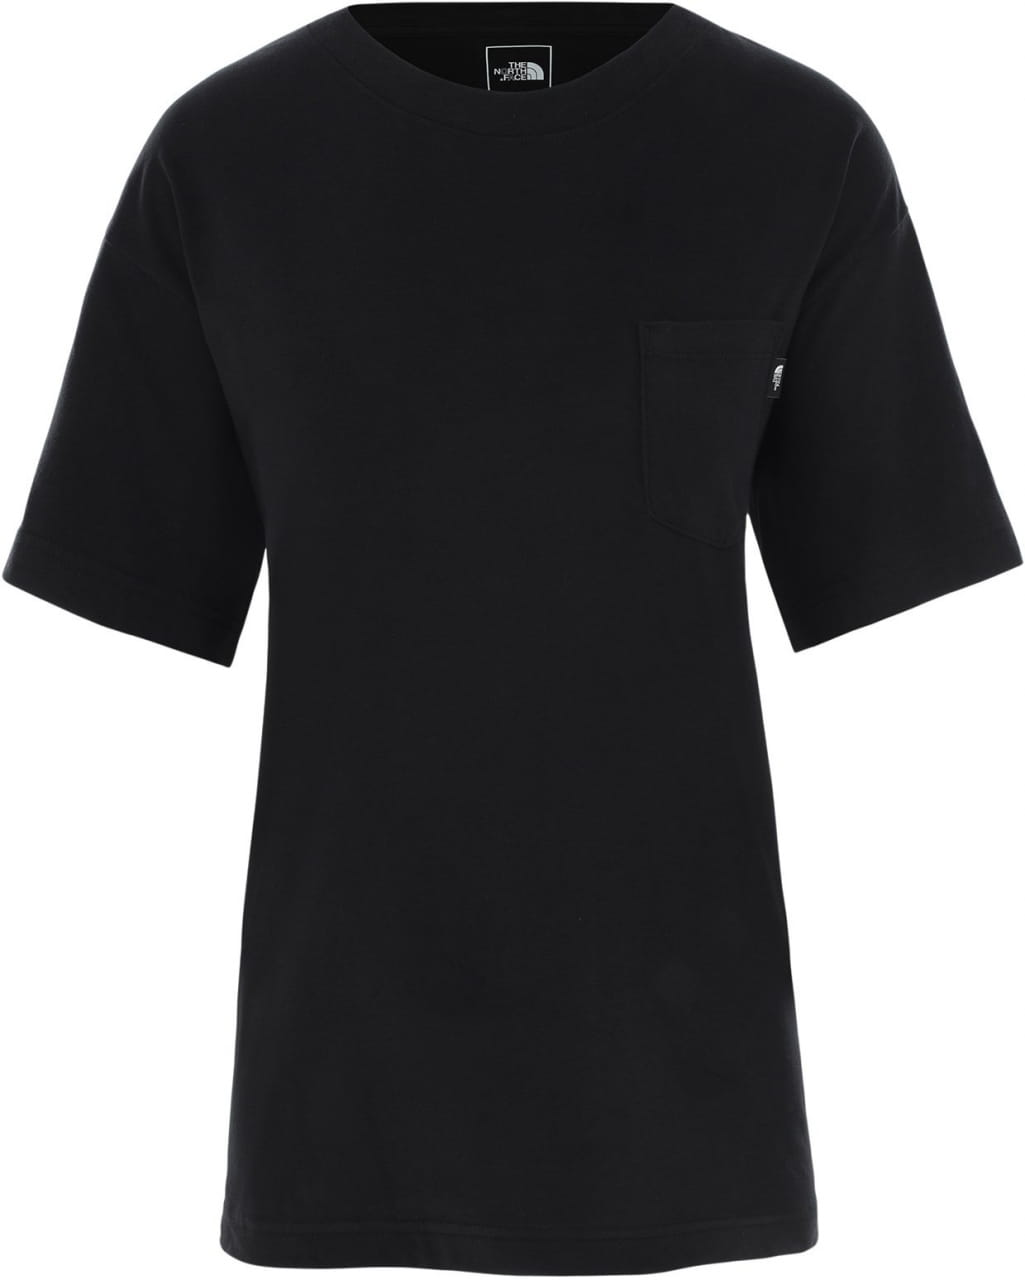 T-Shirts The North Face Women's Relaxed Pocket T-Shirt